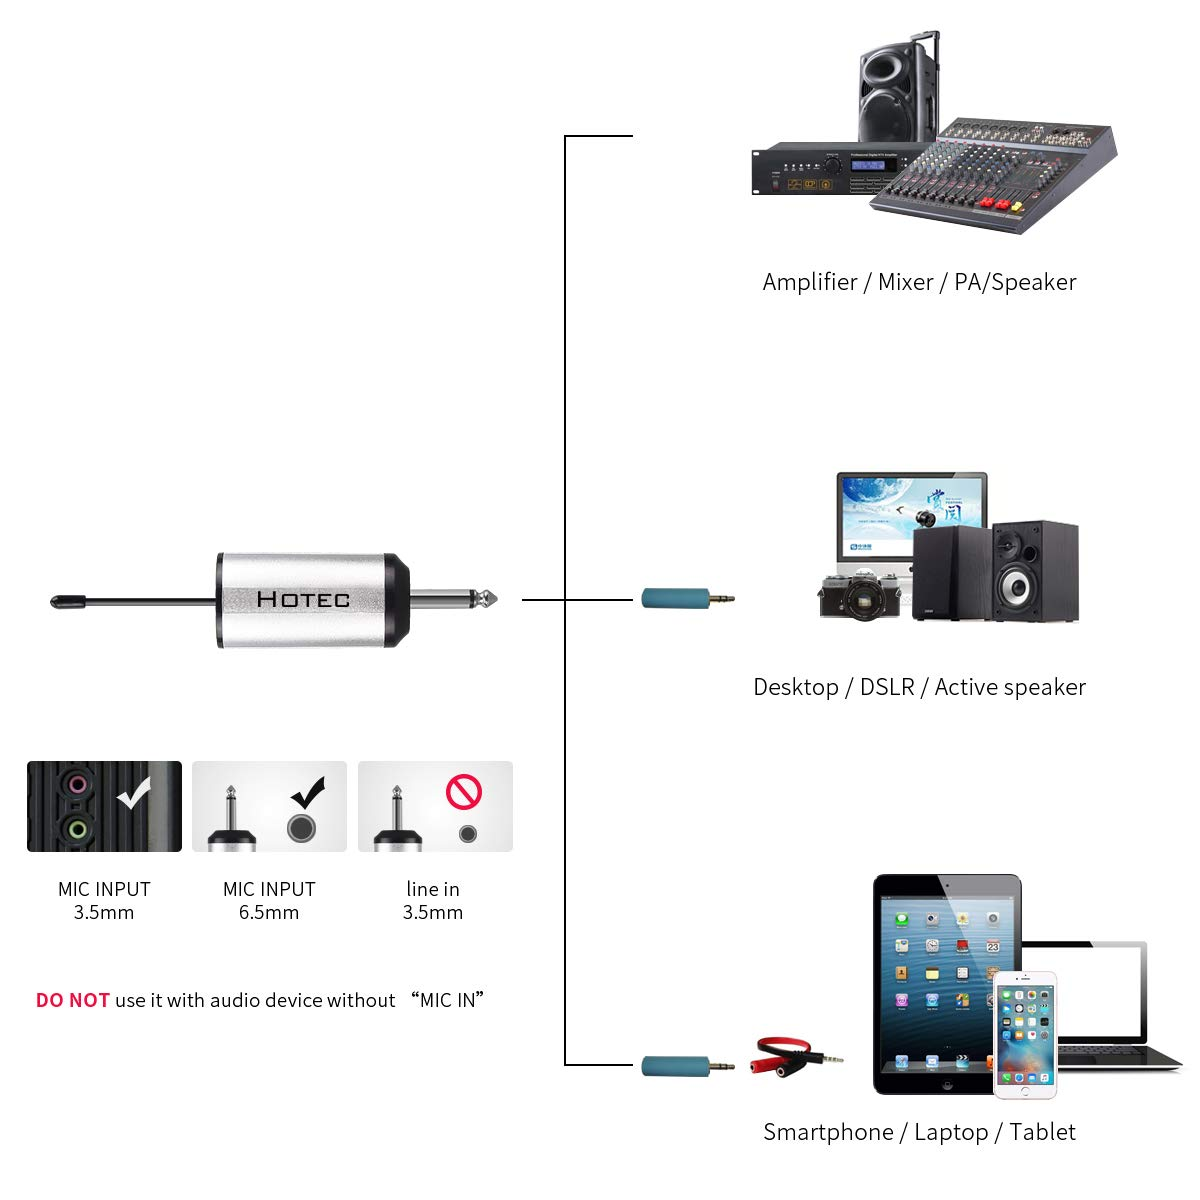 Hotec UHF Wireless Headset Microphone/Lavalier Lapel Mic with Bodypack Transmitter and Mini Rechargeable Receiver 1/4'' Output, For Live Performances, Support Phone by Hotec (Image #4)